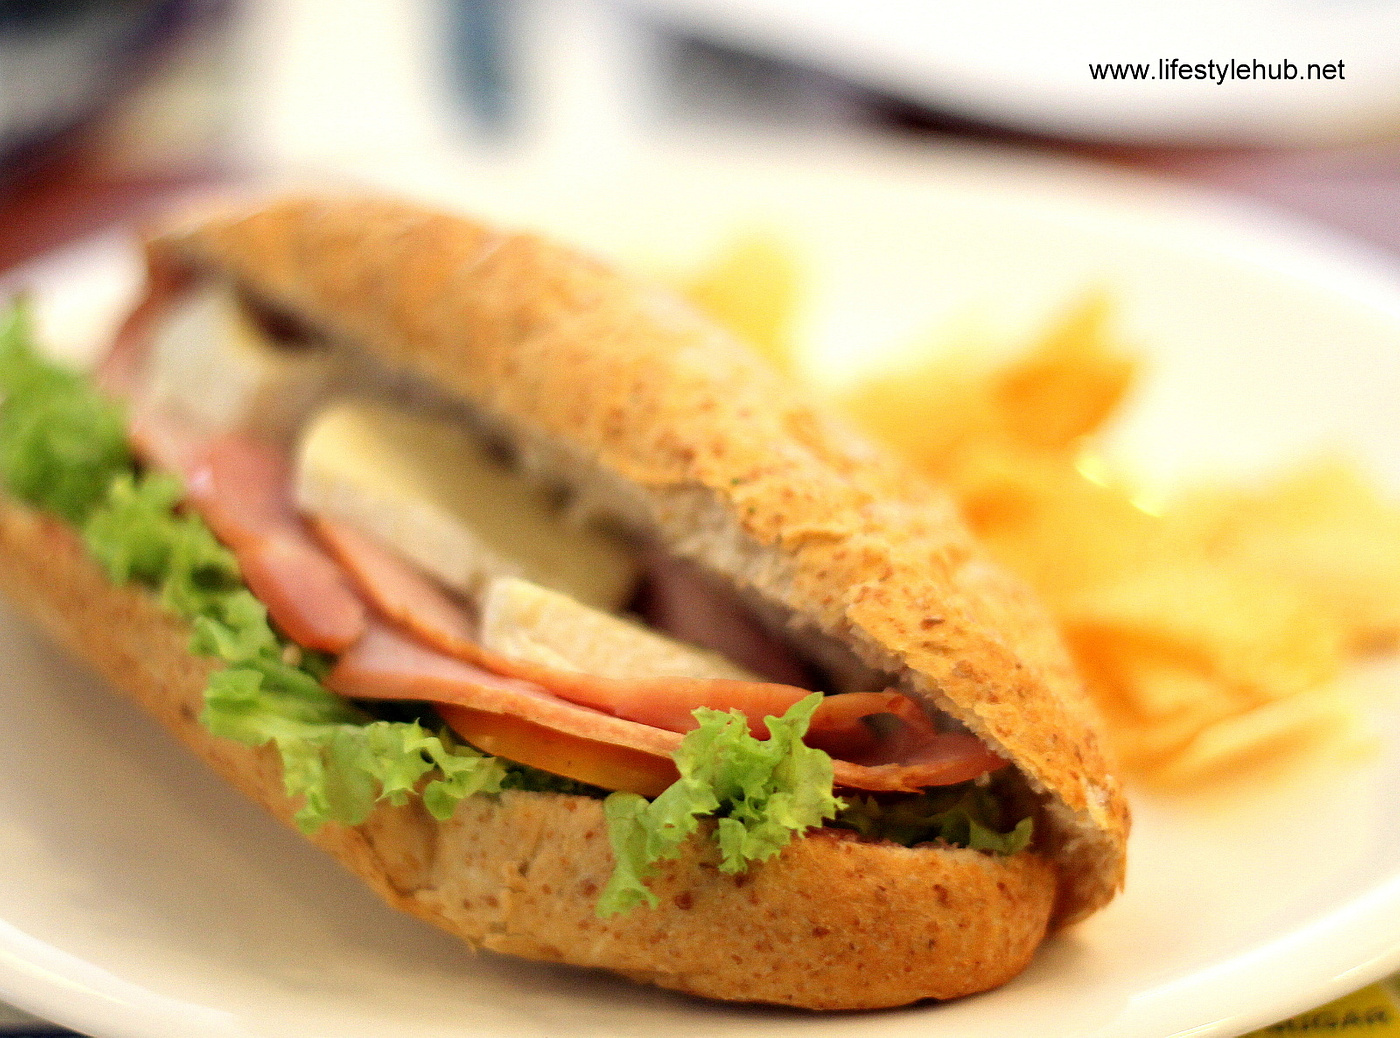 cafe france new gourmet sandwiches